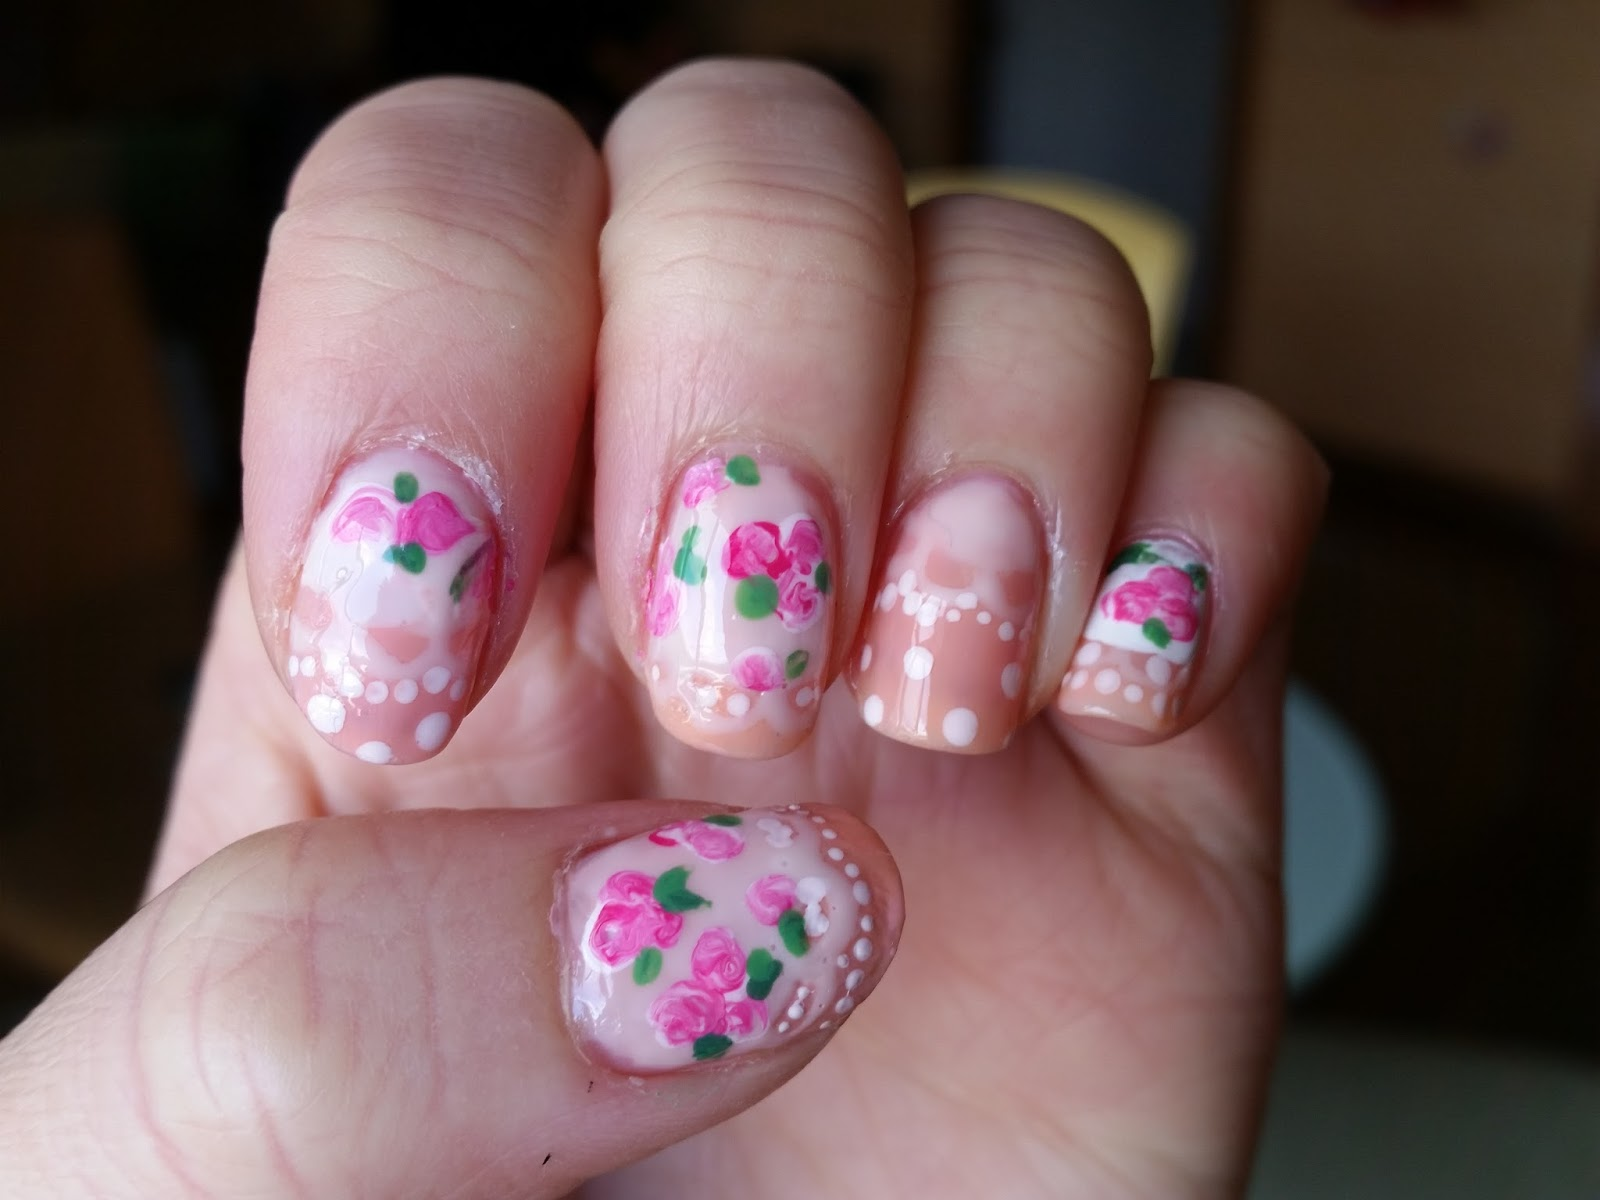 Beauty in Everyday Life: [Nail Look of the Day] Lace, florals, and ...